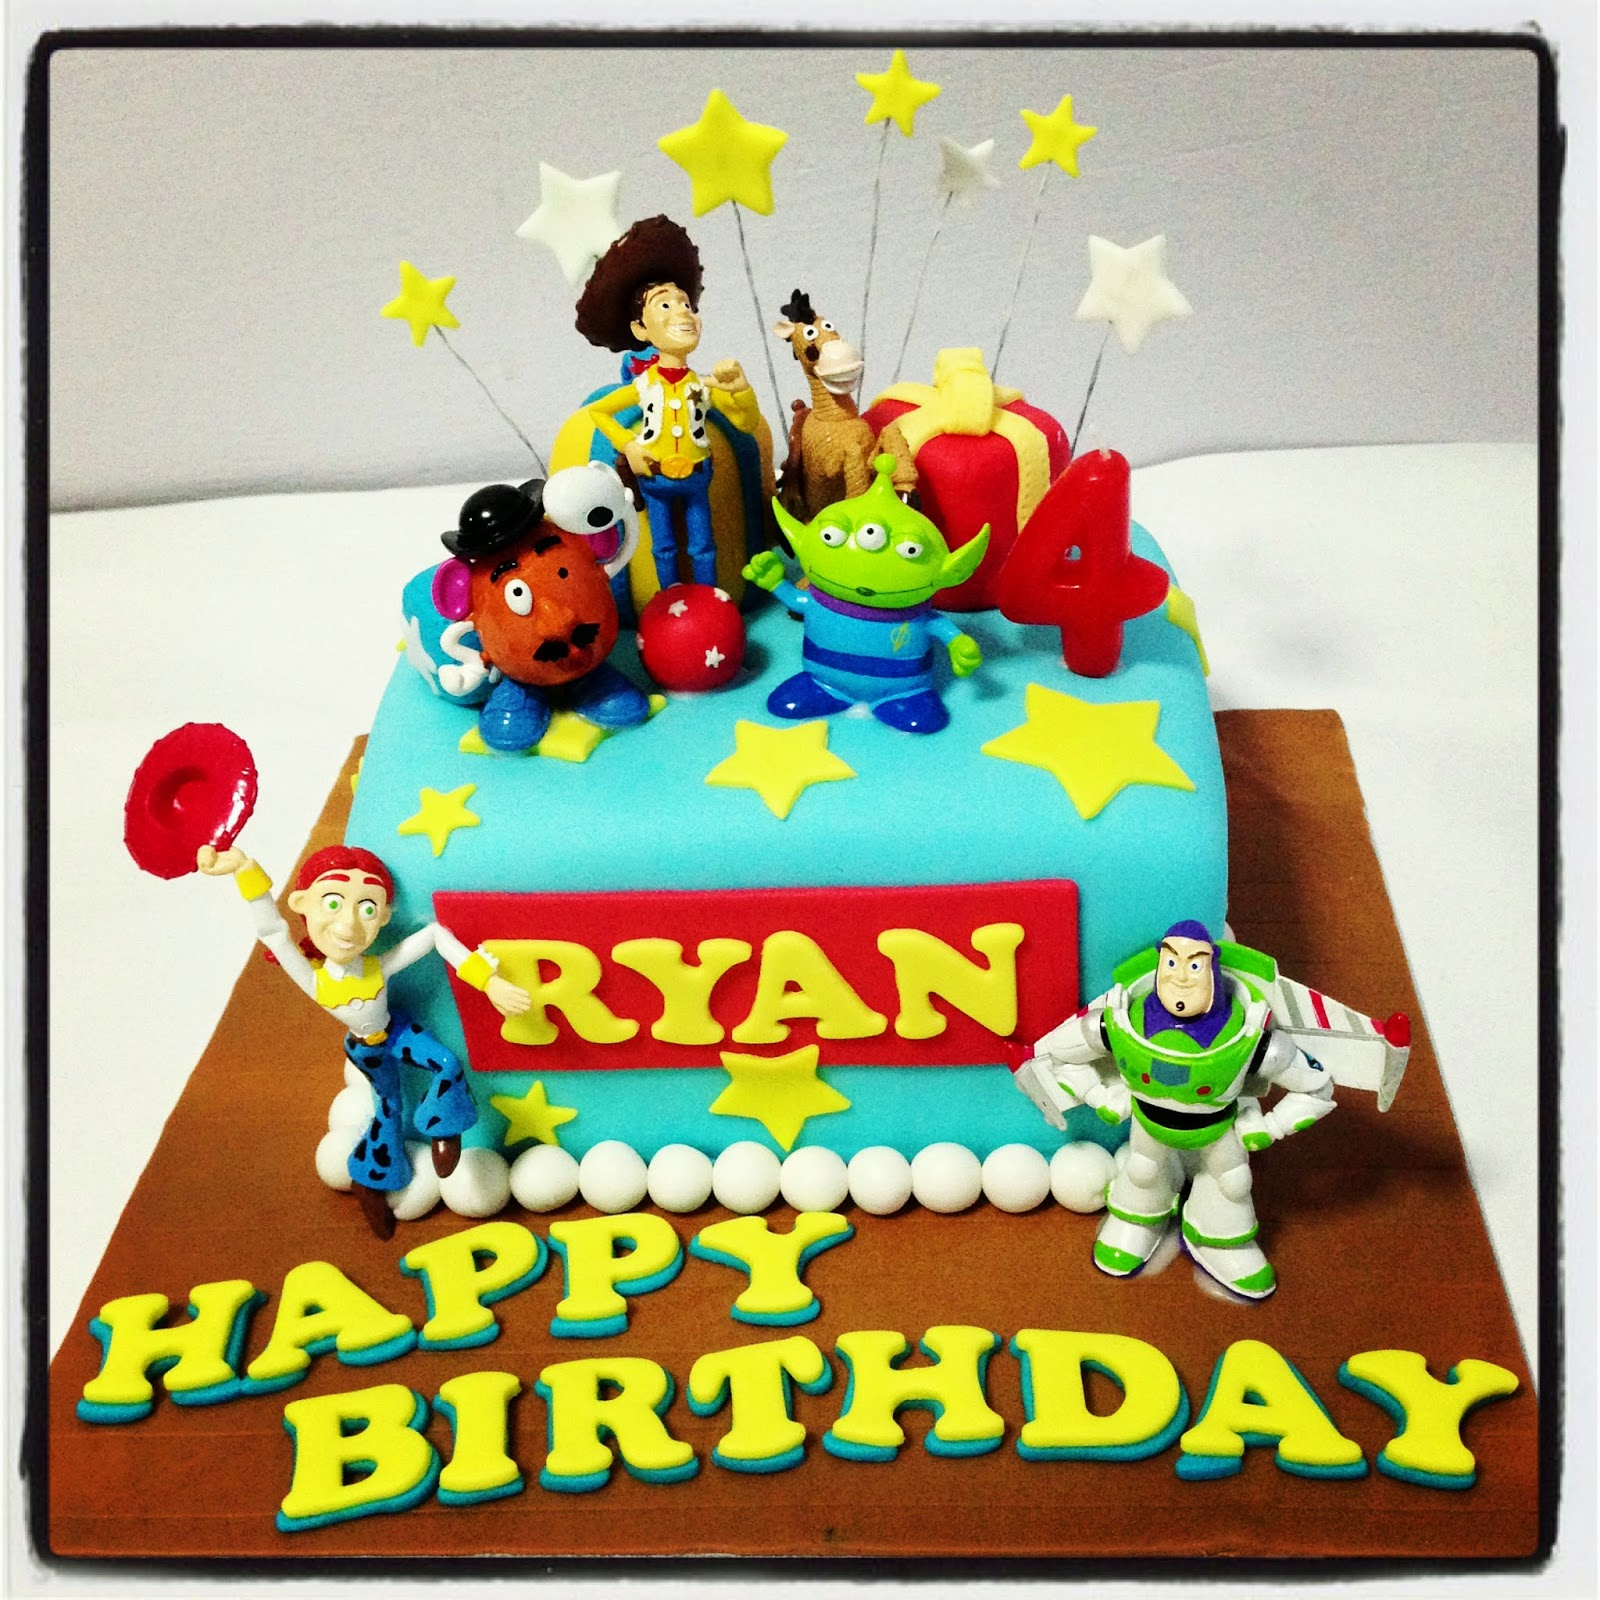 Happy Birthday Ryan Cake Images